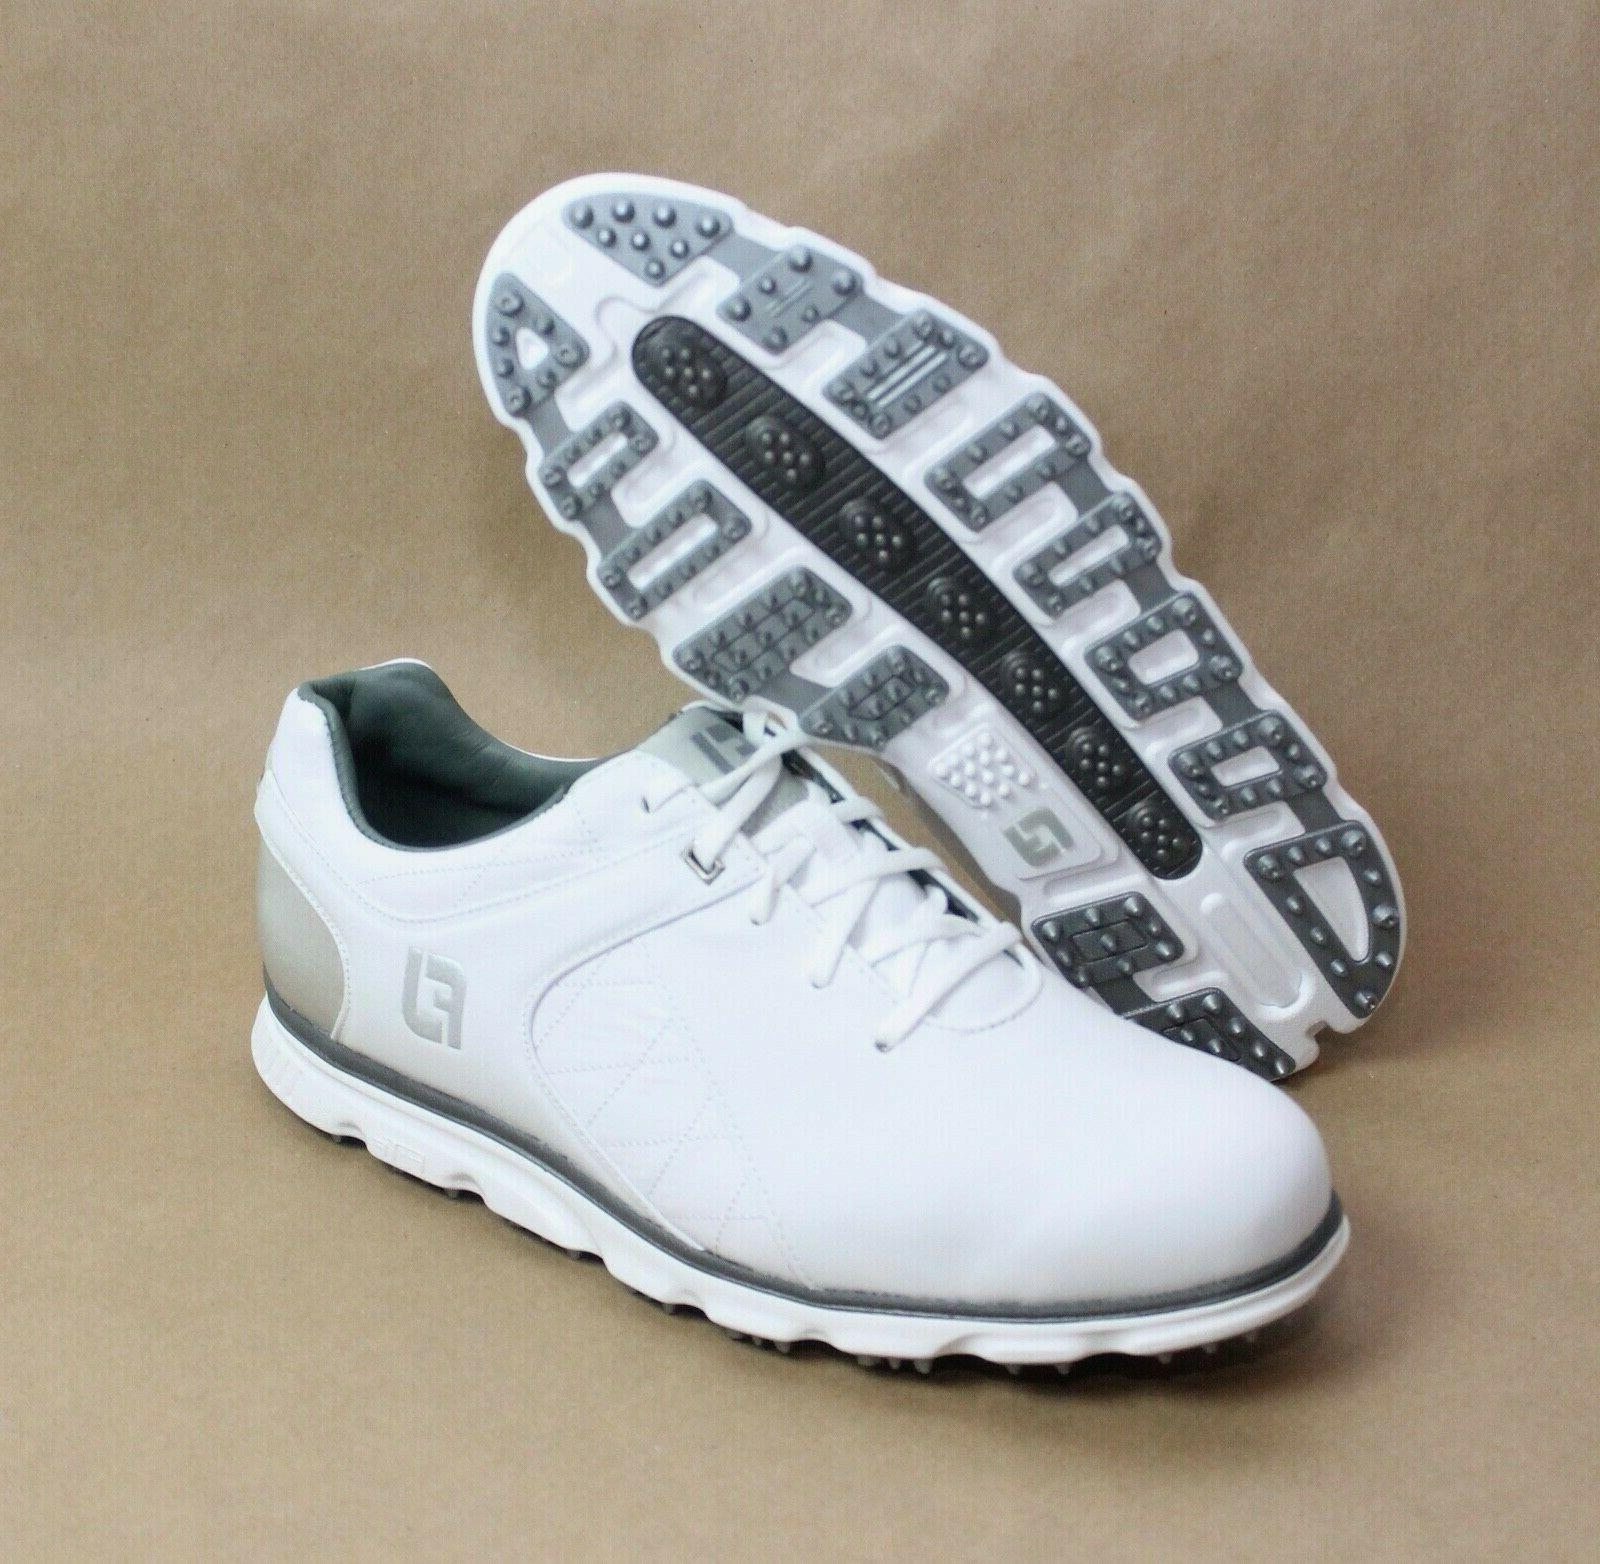 pro sl spikeless golf shoes white silver